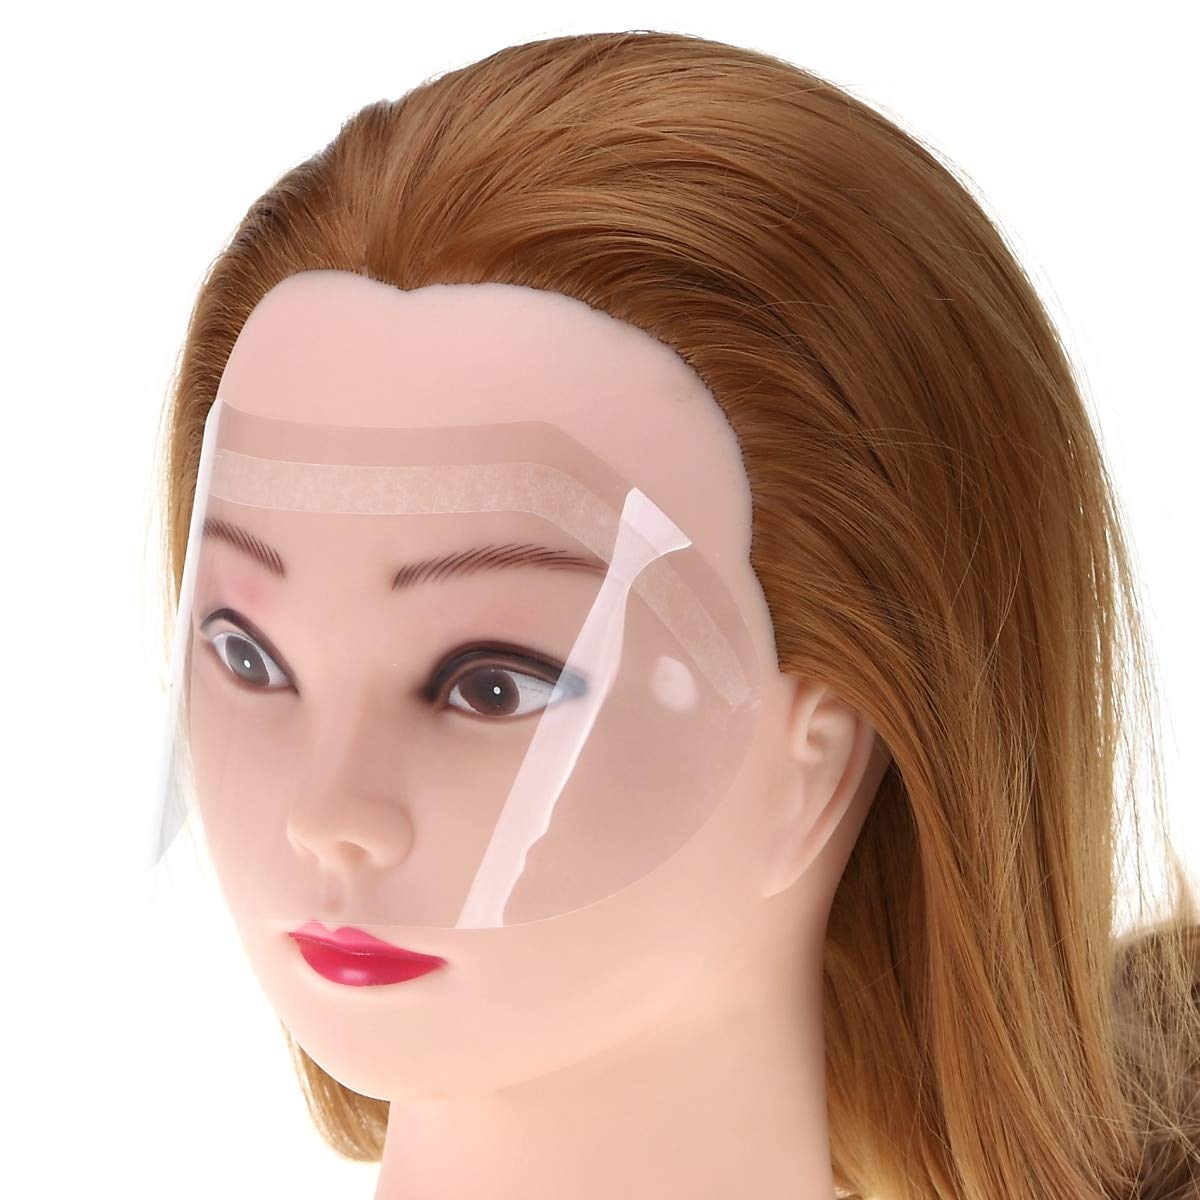 50pcs/set Hair Salon Hairspray Masks Film Hair Cutting Coloring for Forehead Eyes Protector Prevent Disposable Face Shield by SBRL